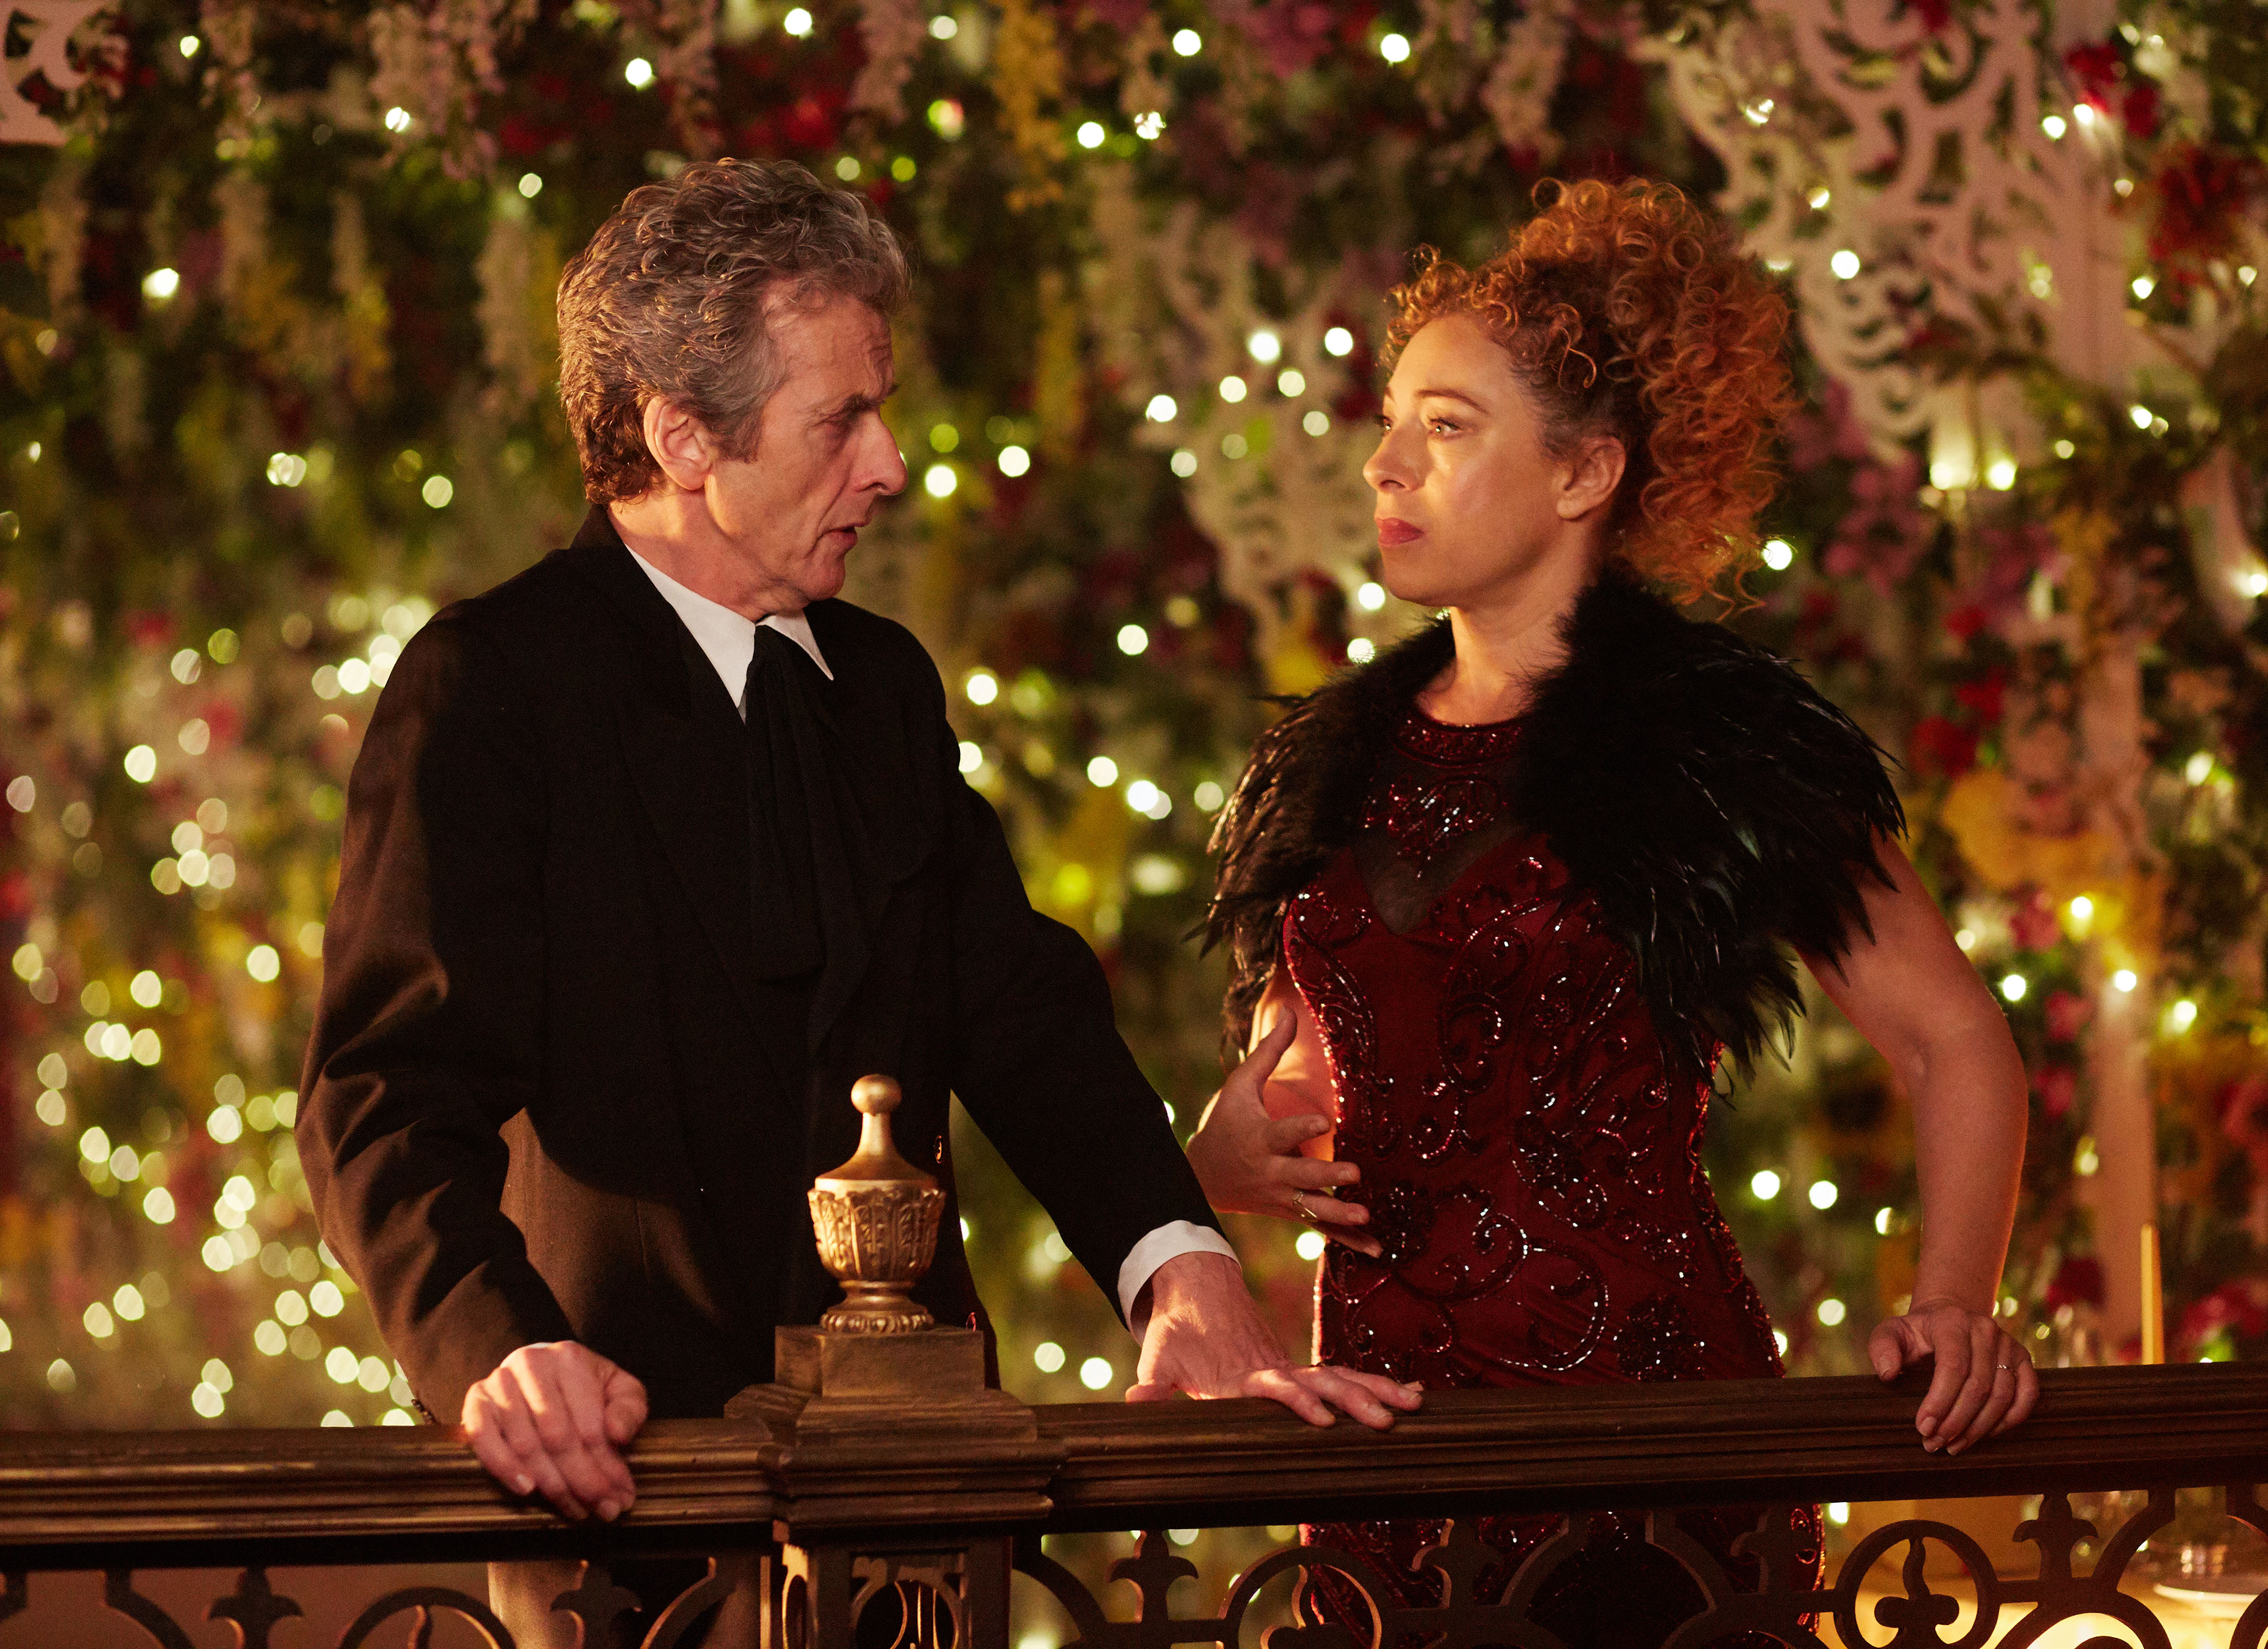 Doctor Who Christmas Special 2015.Doctor Who Christmas Special The Husbands Of River Song